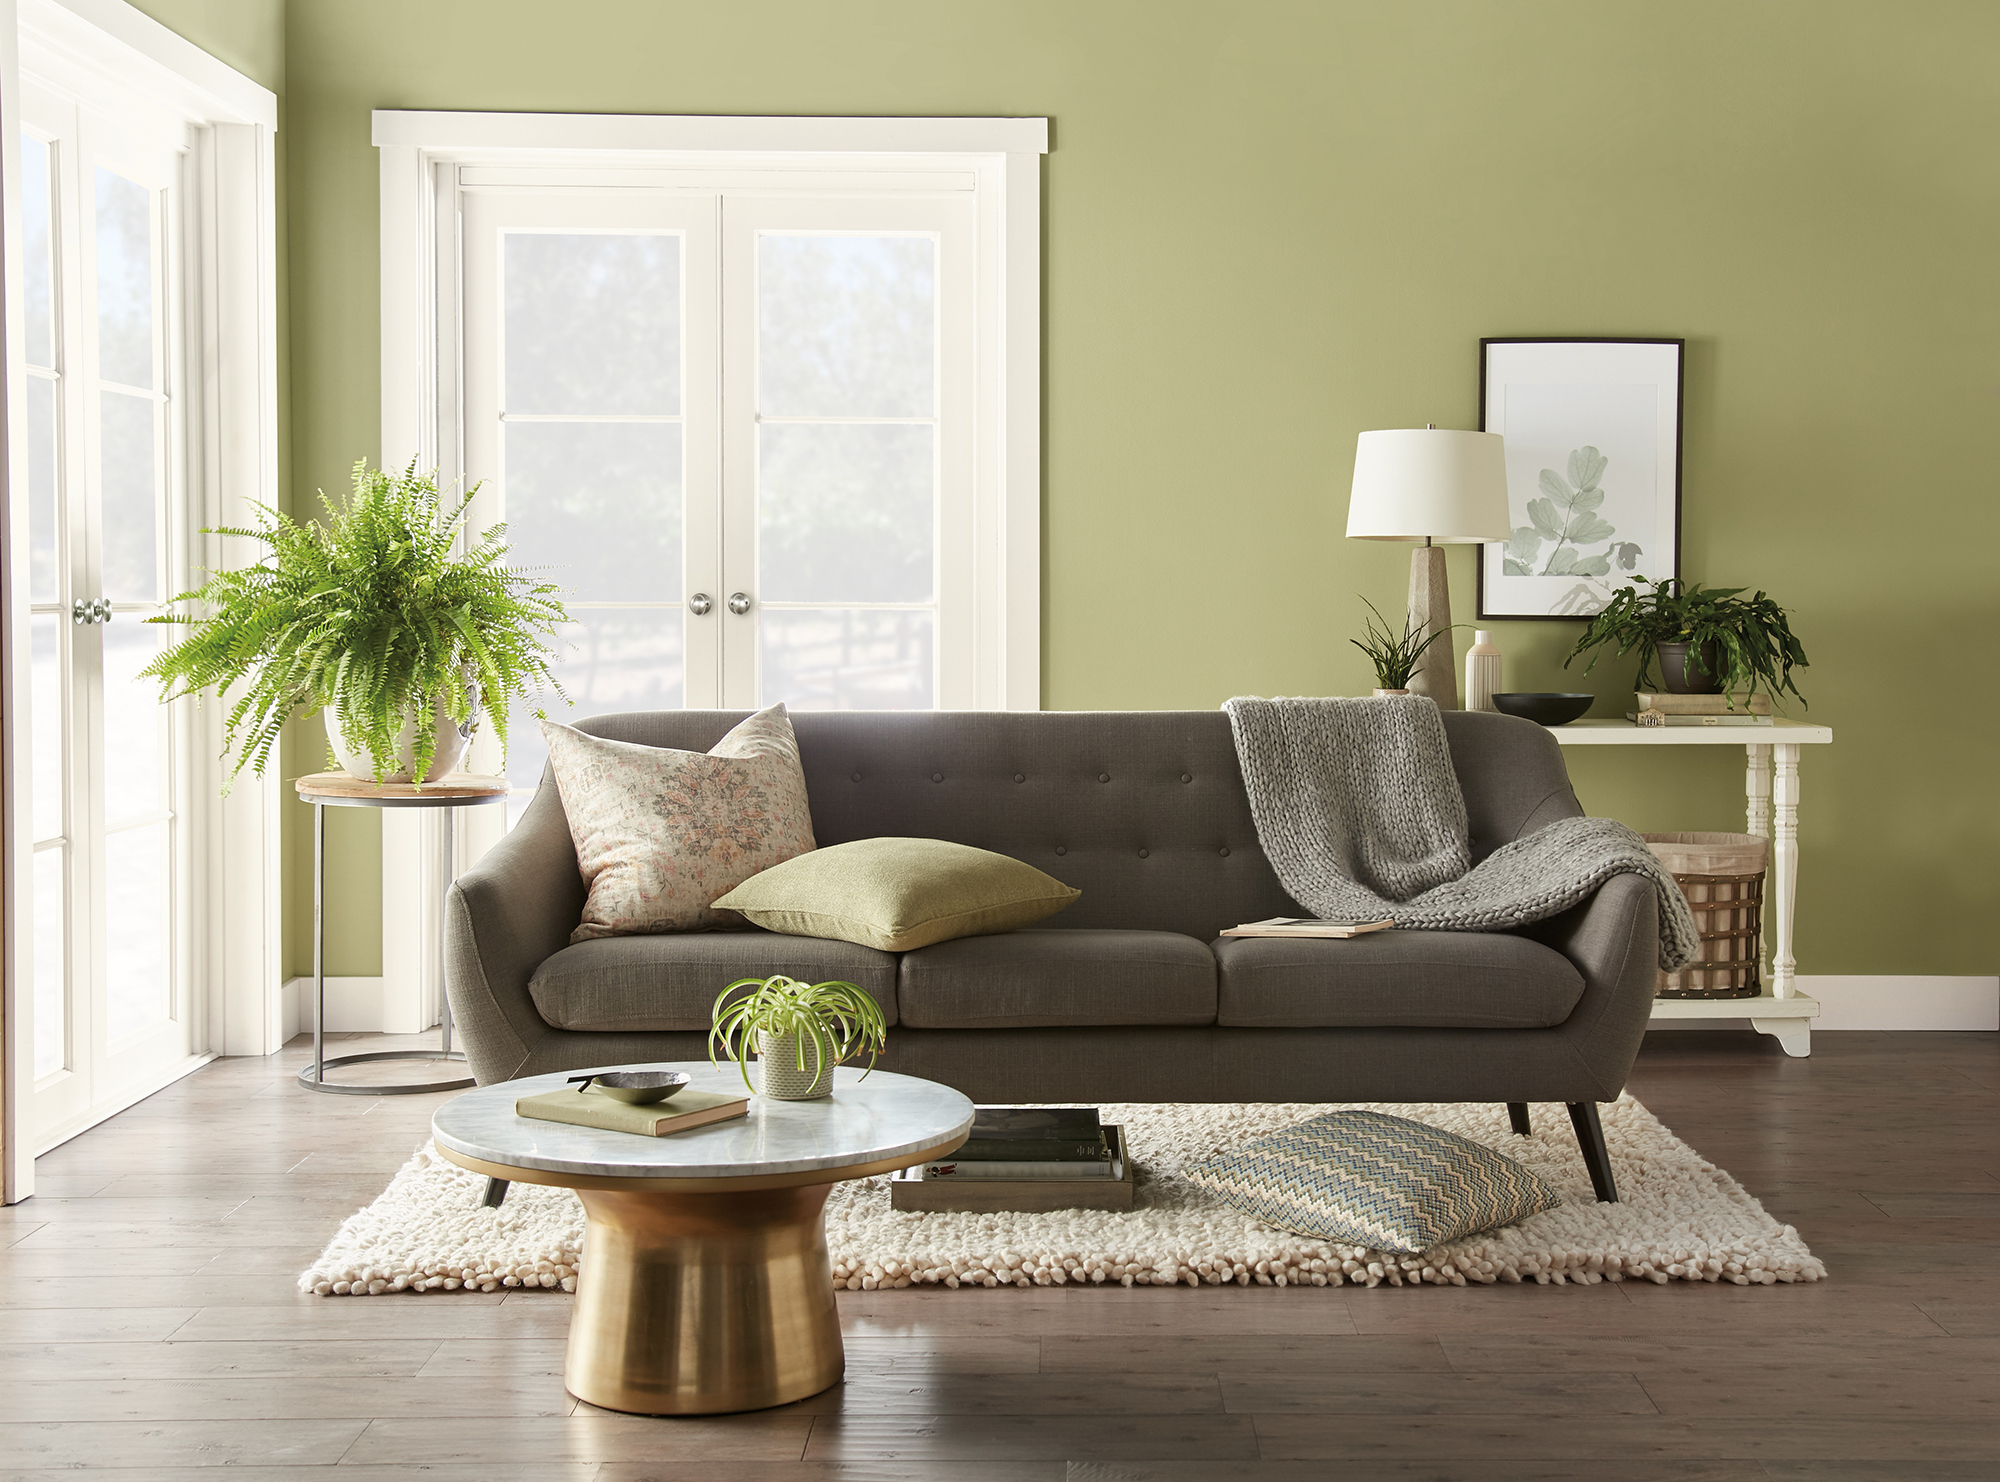 Behr's 2020 Paint Color of the Year